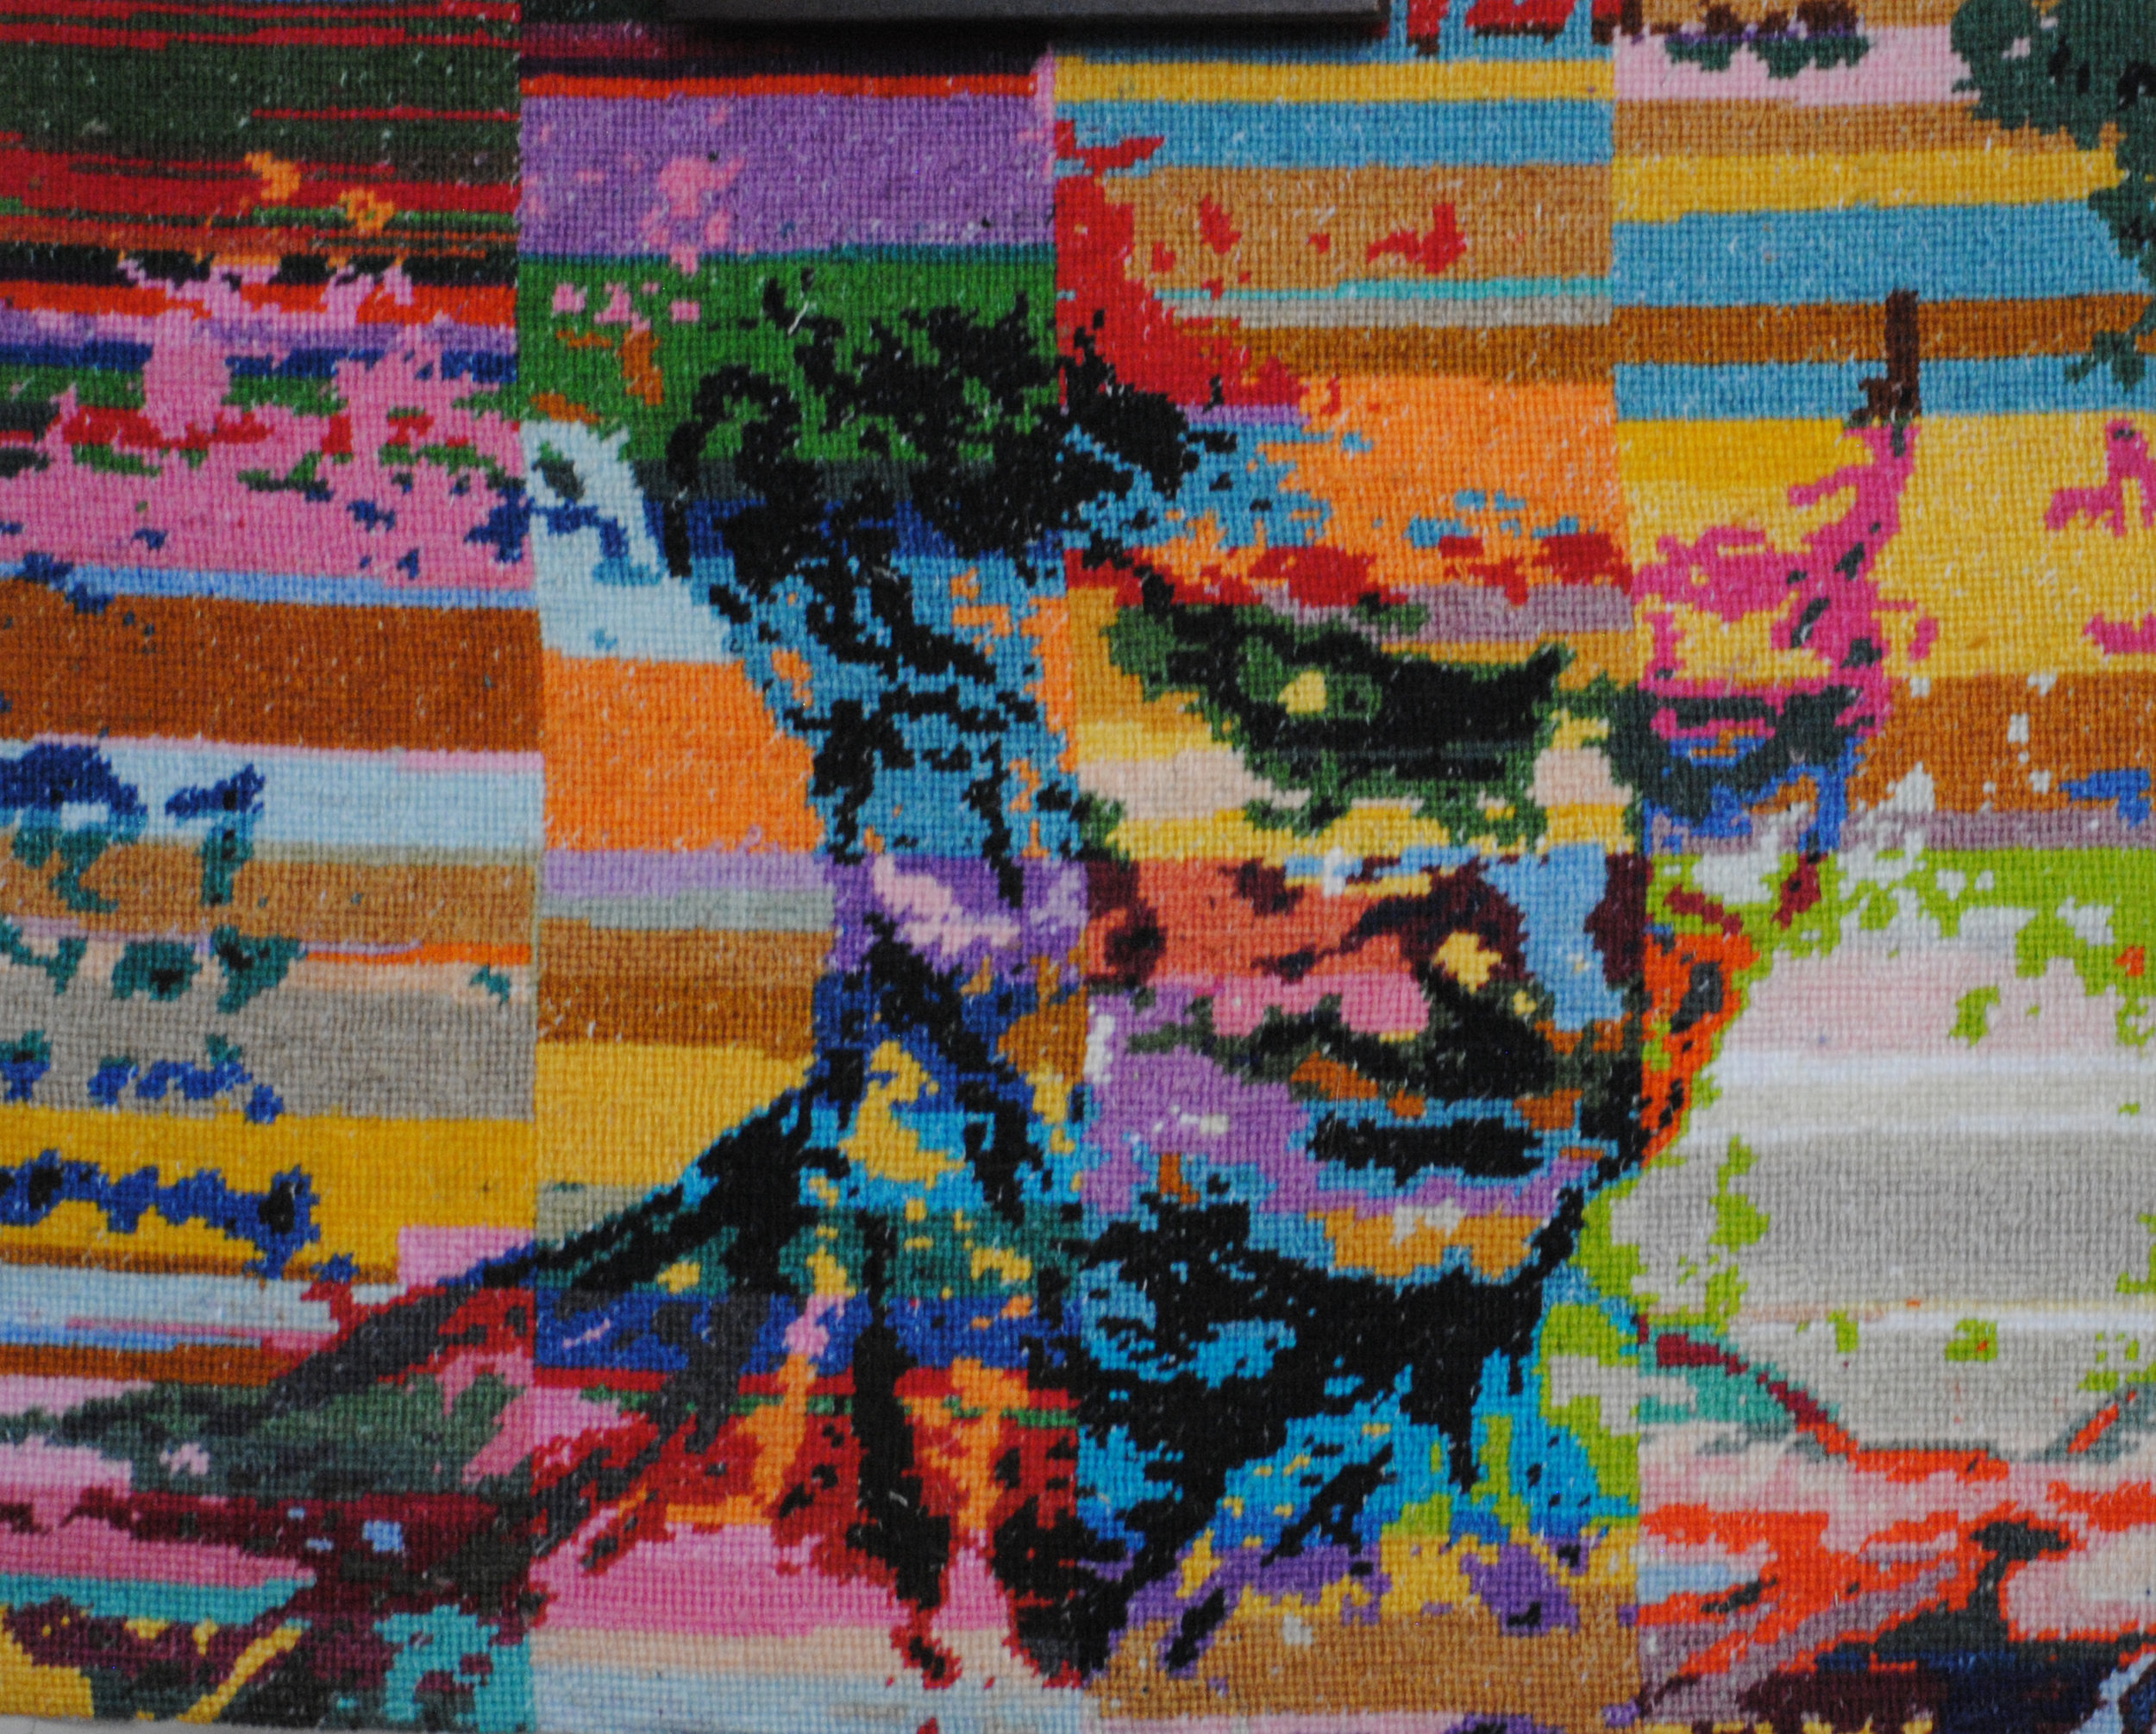 Holly Day's needlepoint is a rendering of one of Leonardo de Vinci's sketches. It depicts the down-facing head and shoulders of a man in da Vinci's life-like style. In the embroidery, the figure appears against a background of of small, asymmetrical blocks of bright color. The figure is stitched in colors that contrast with the background block, giving the sketch a dynamic feel.